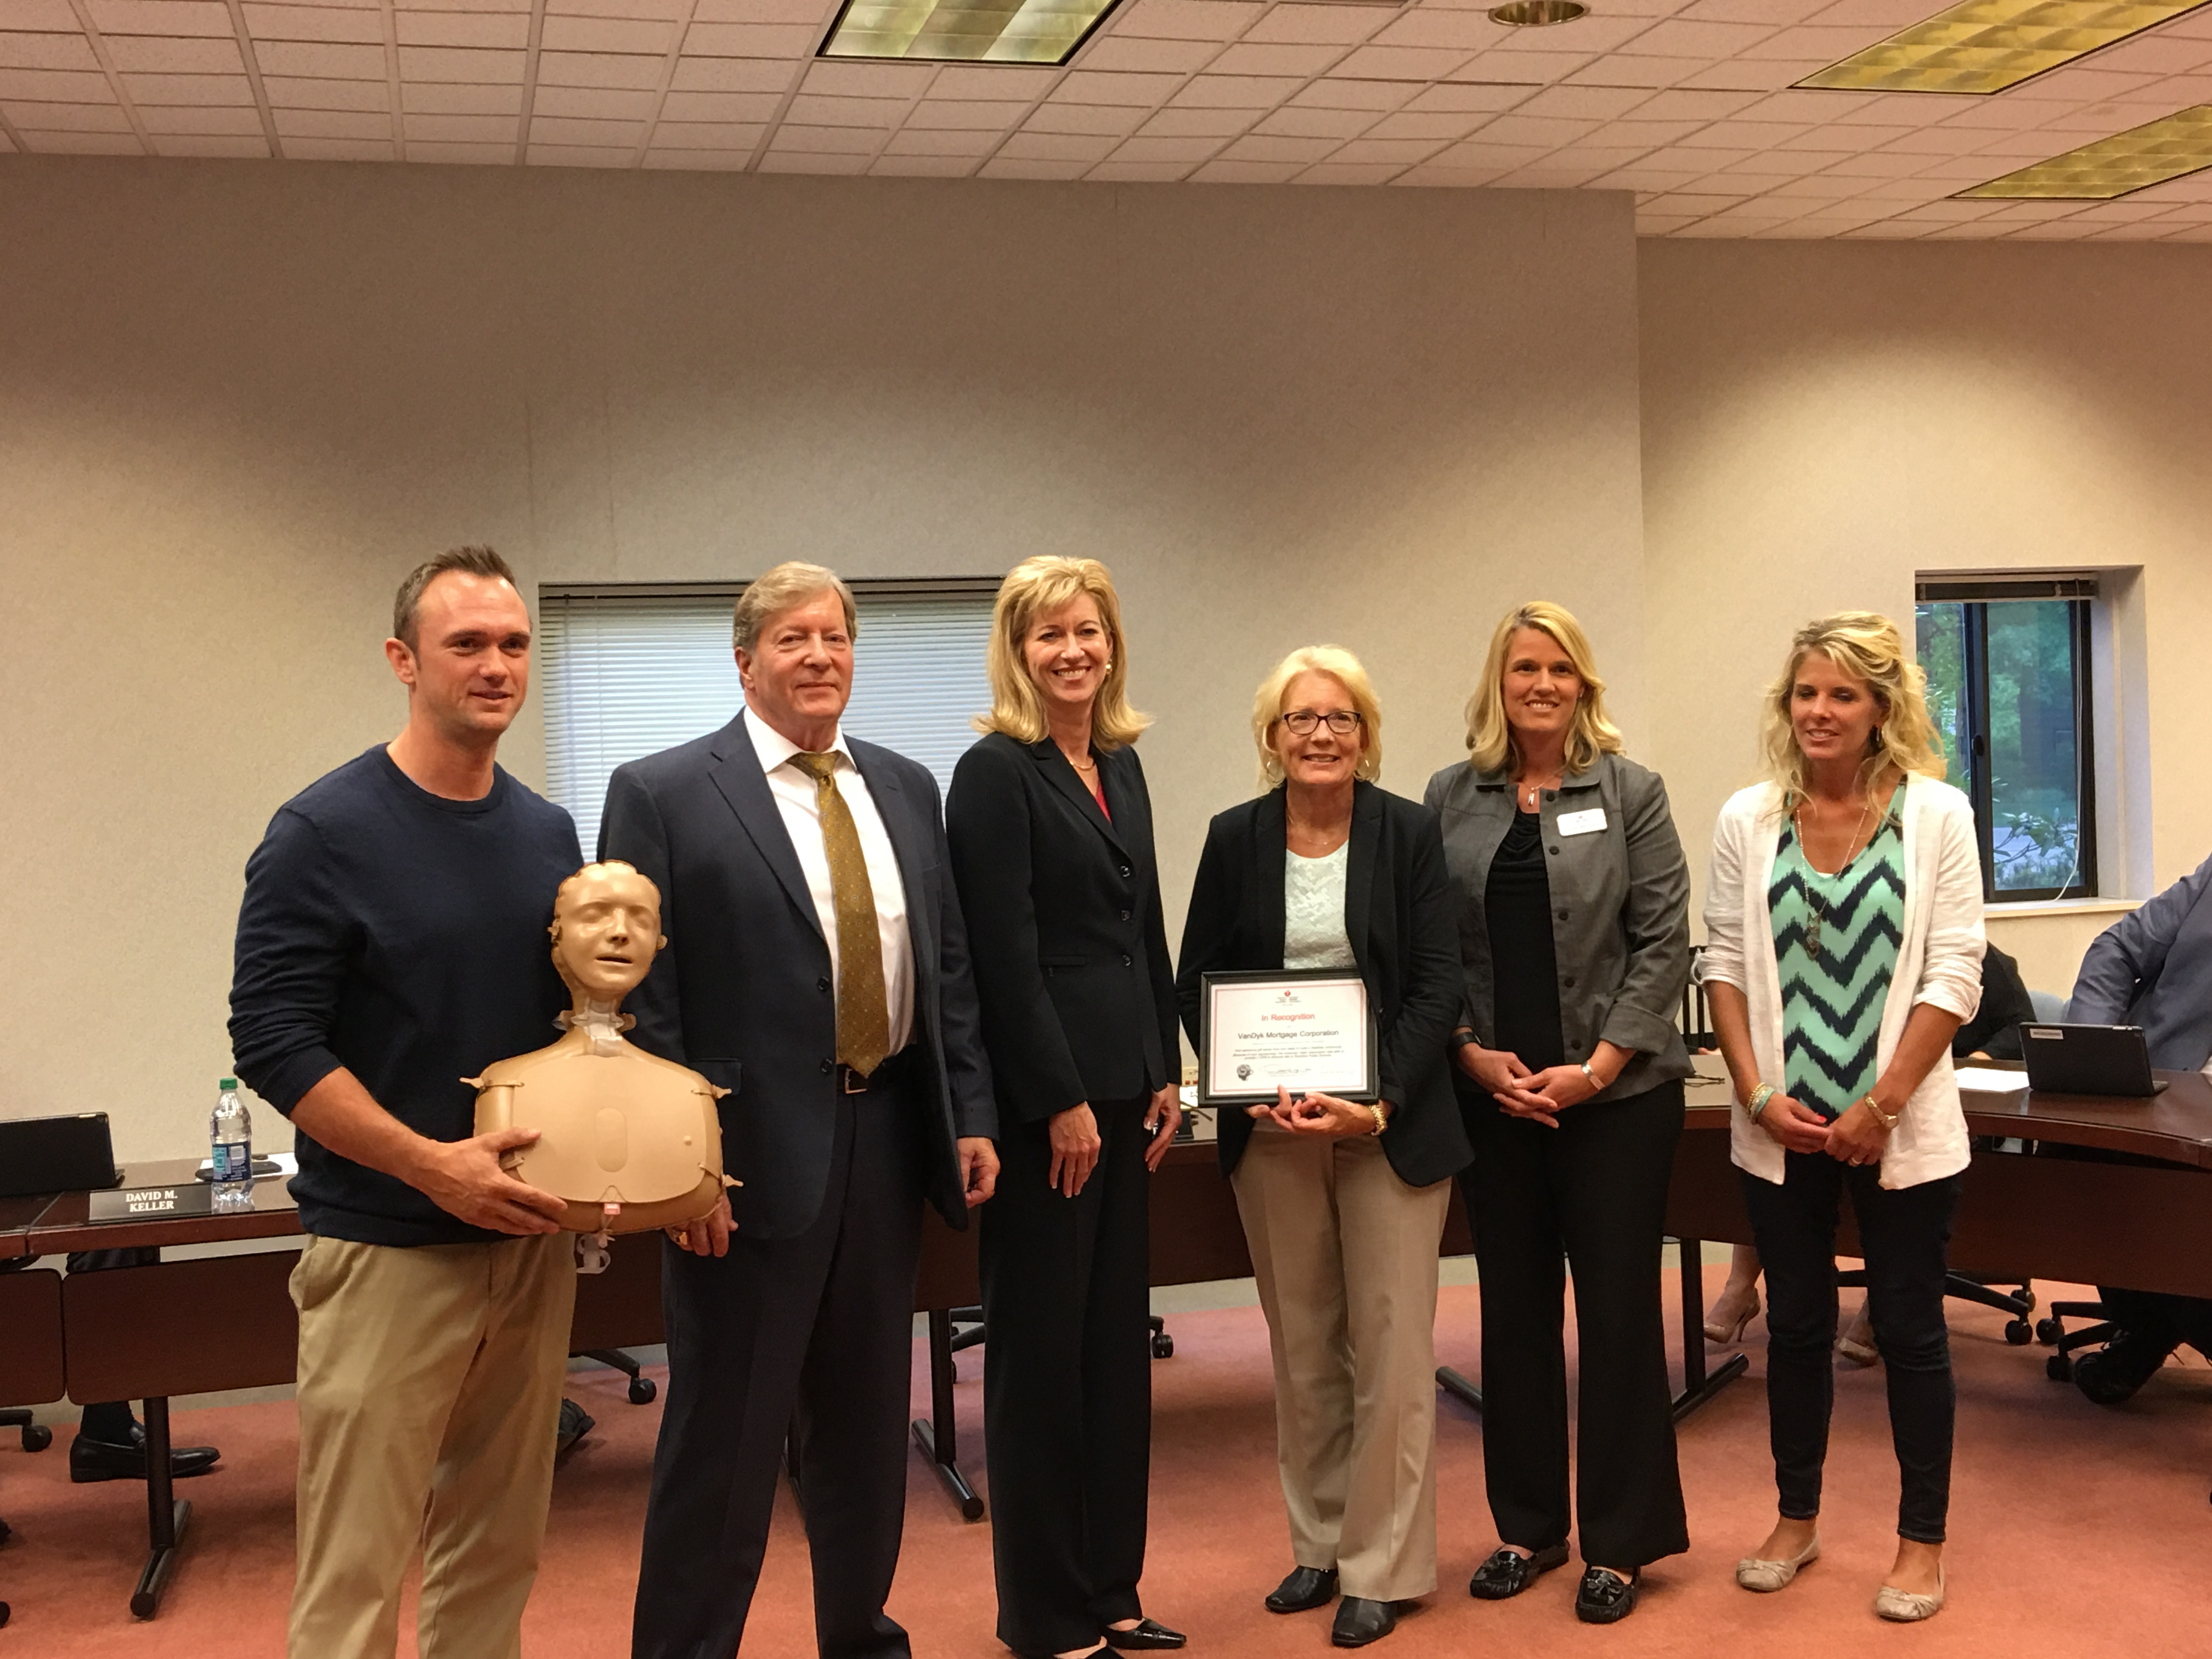 Group photo of AHA and Rockford Public School representatives with inflatable manikin used for CPR training